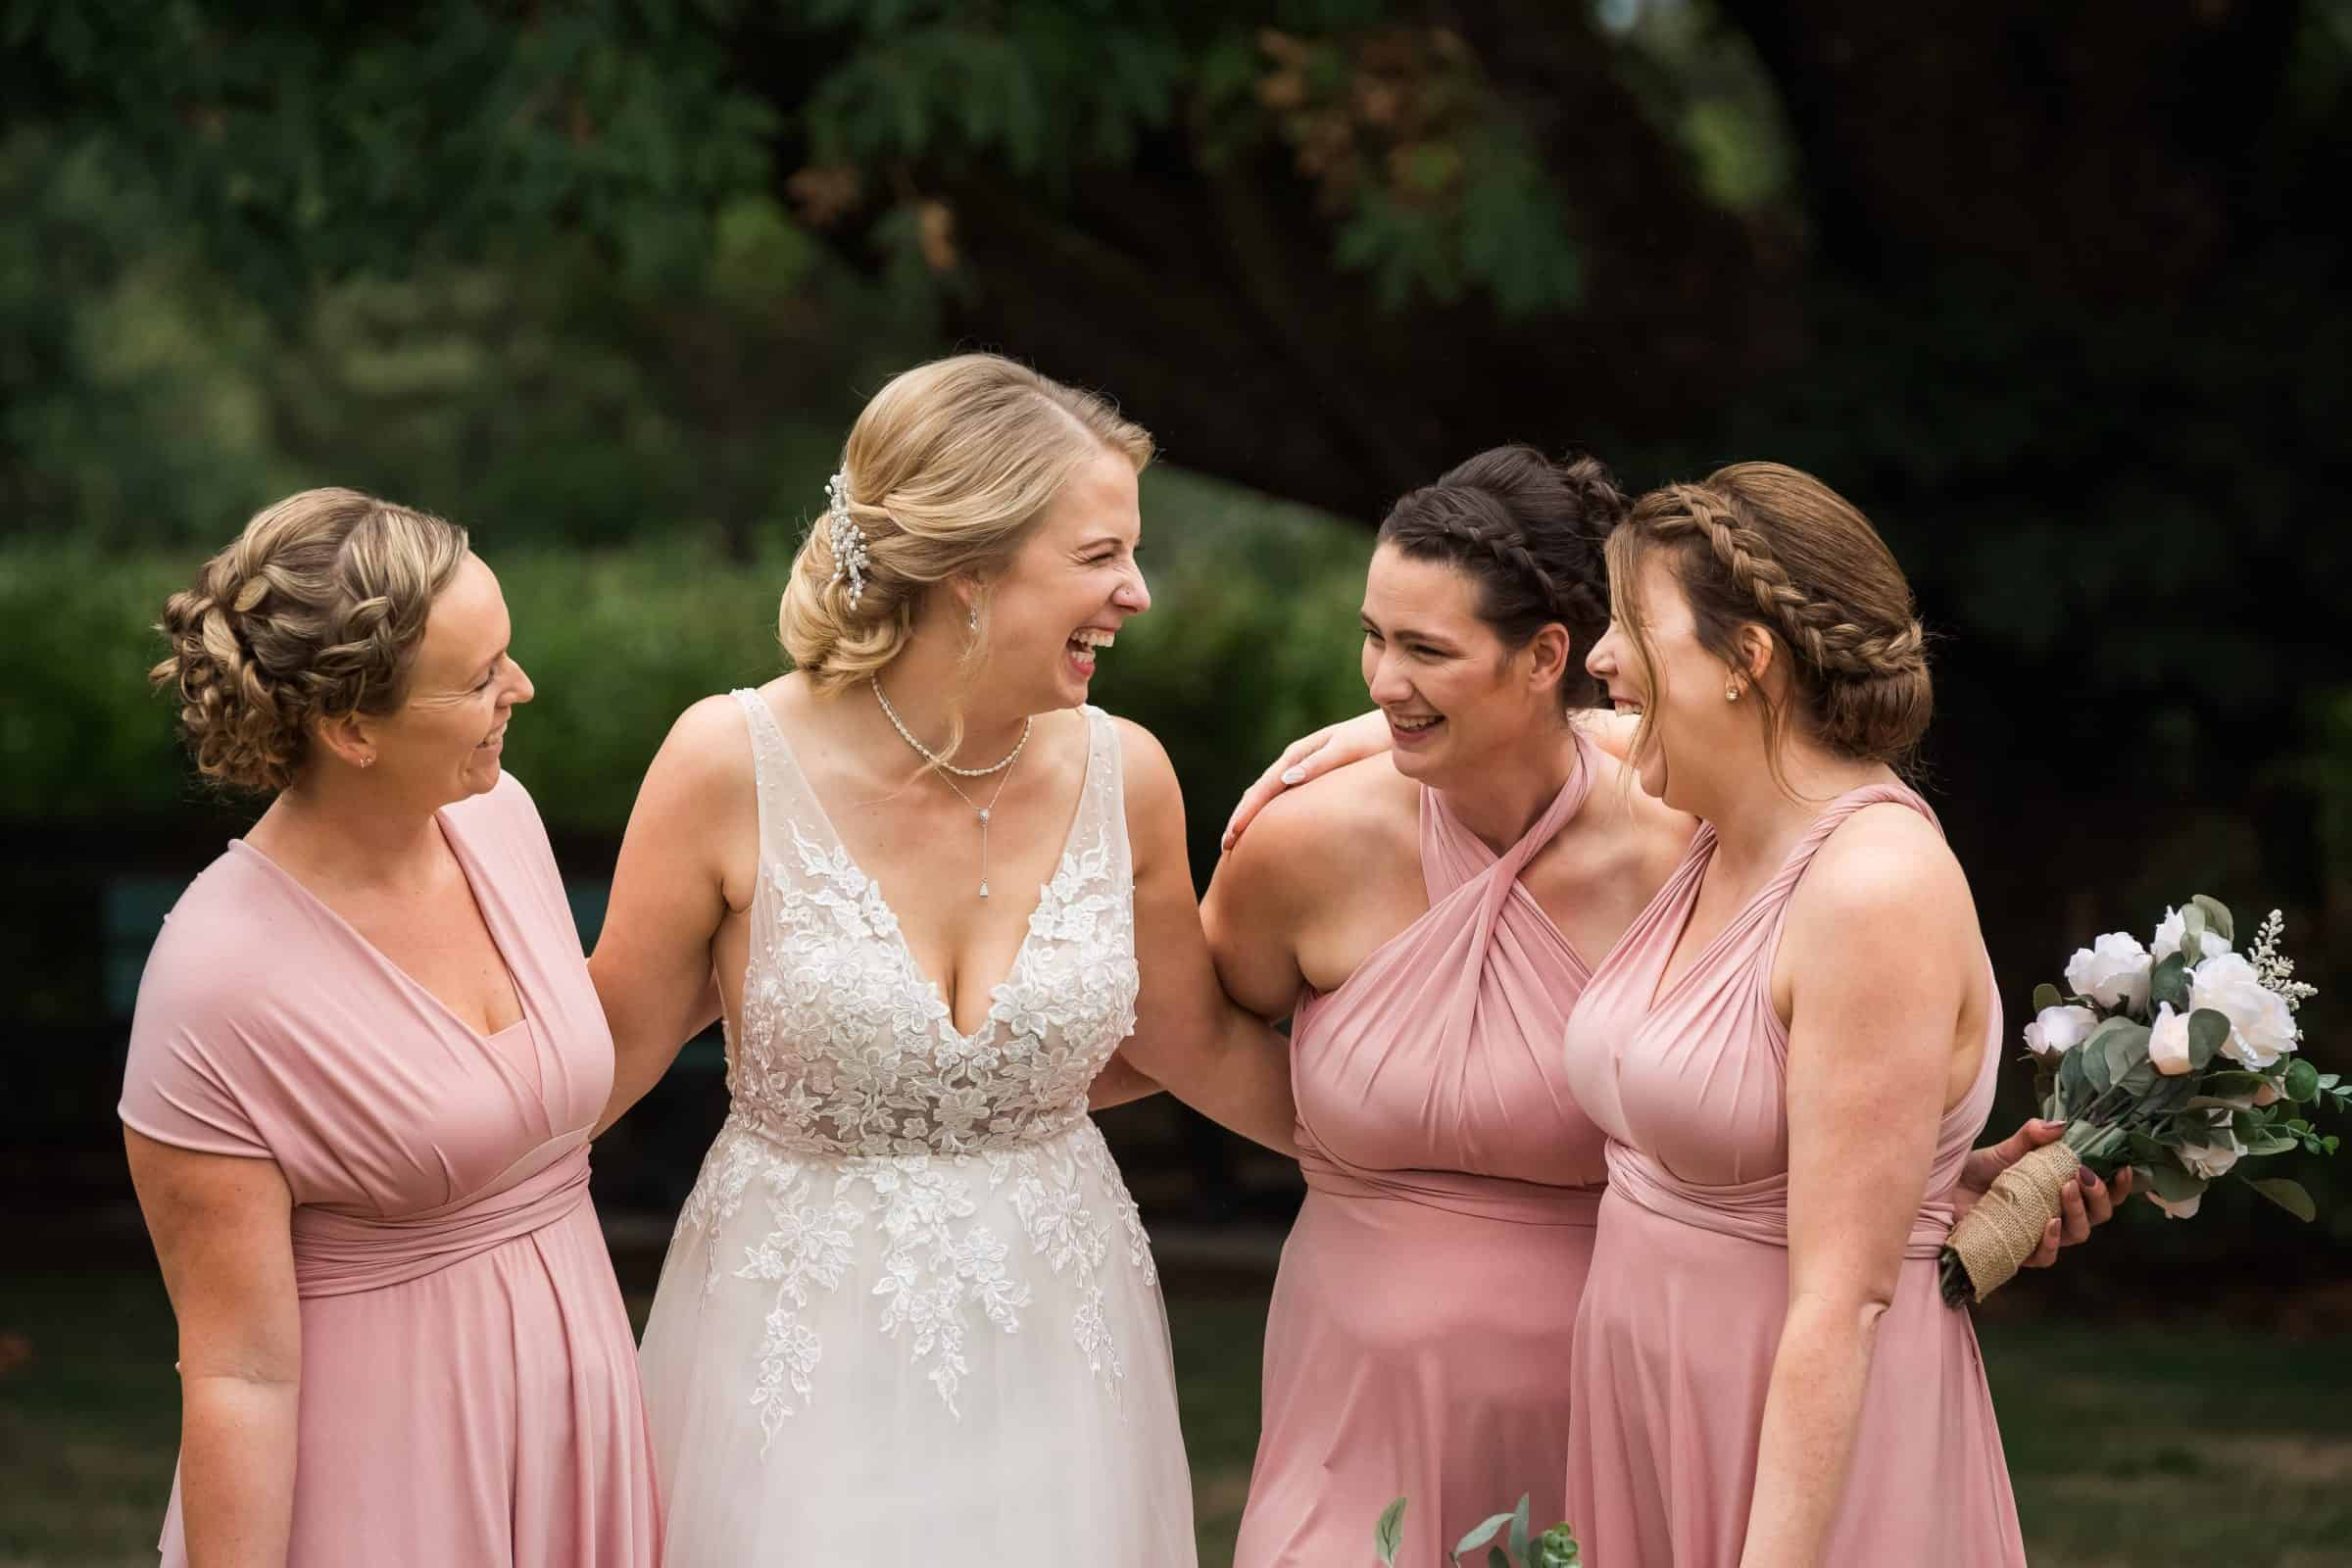 bridal party girls hugging and laughing together